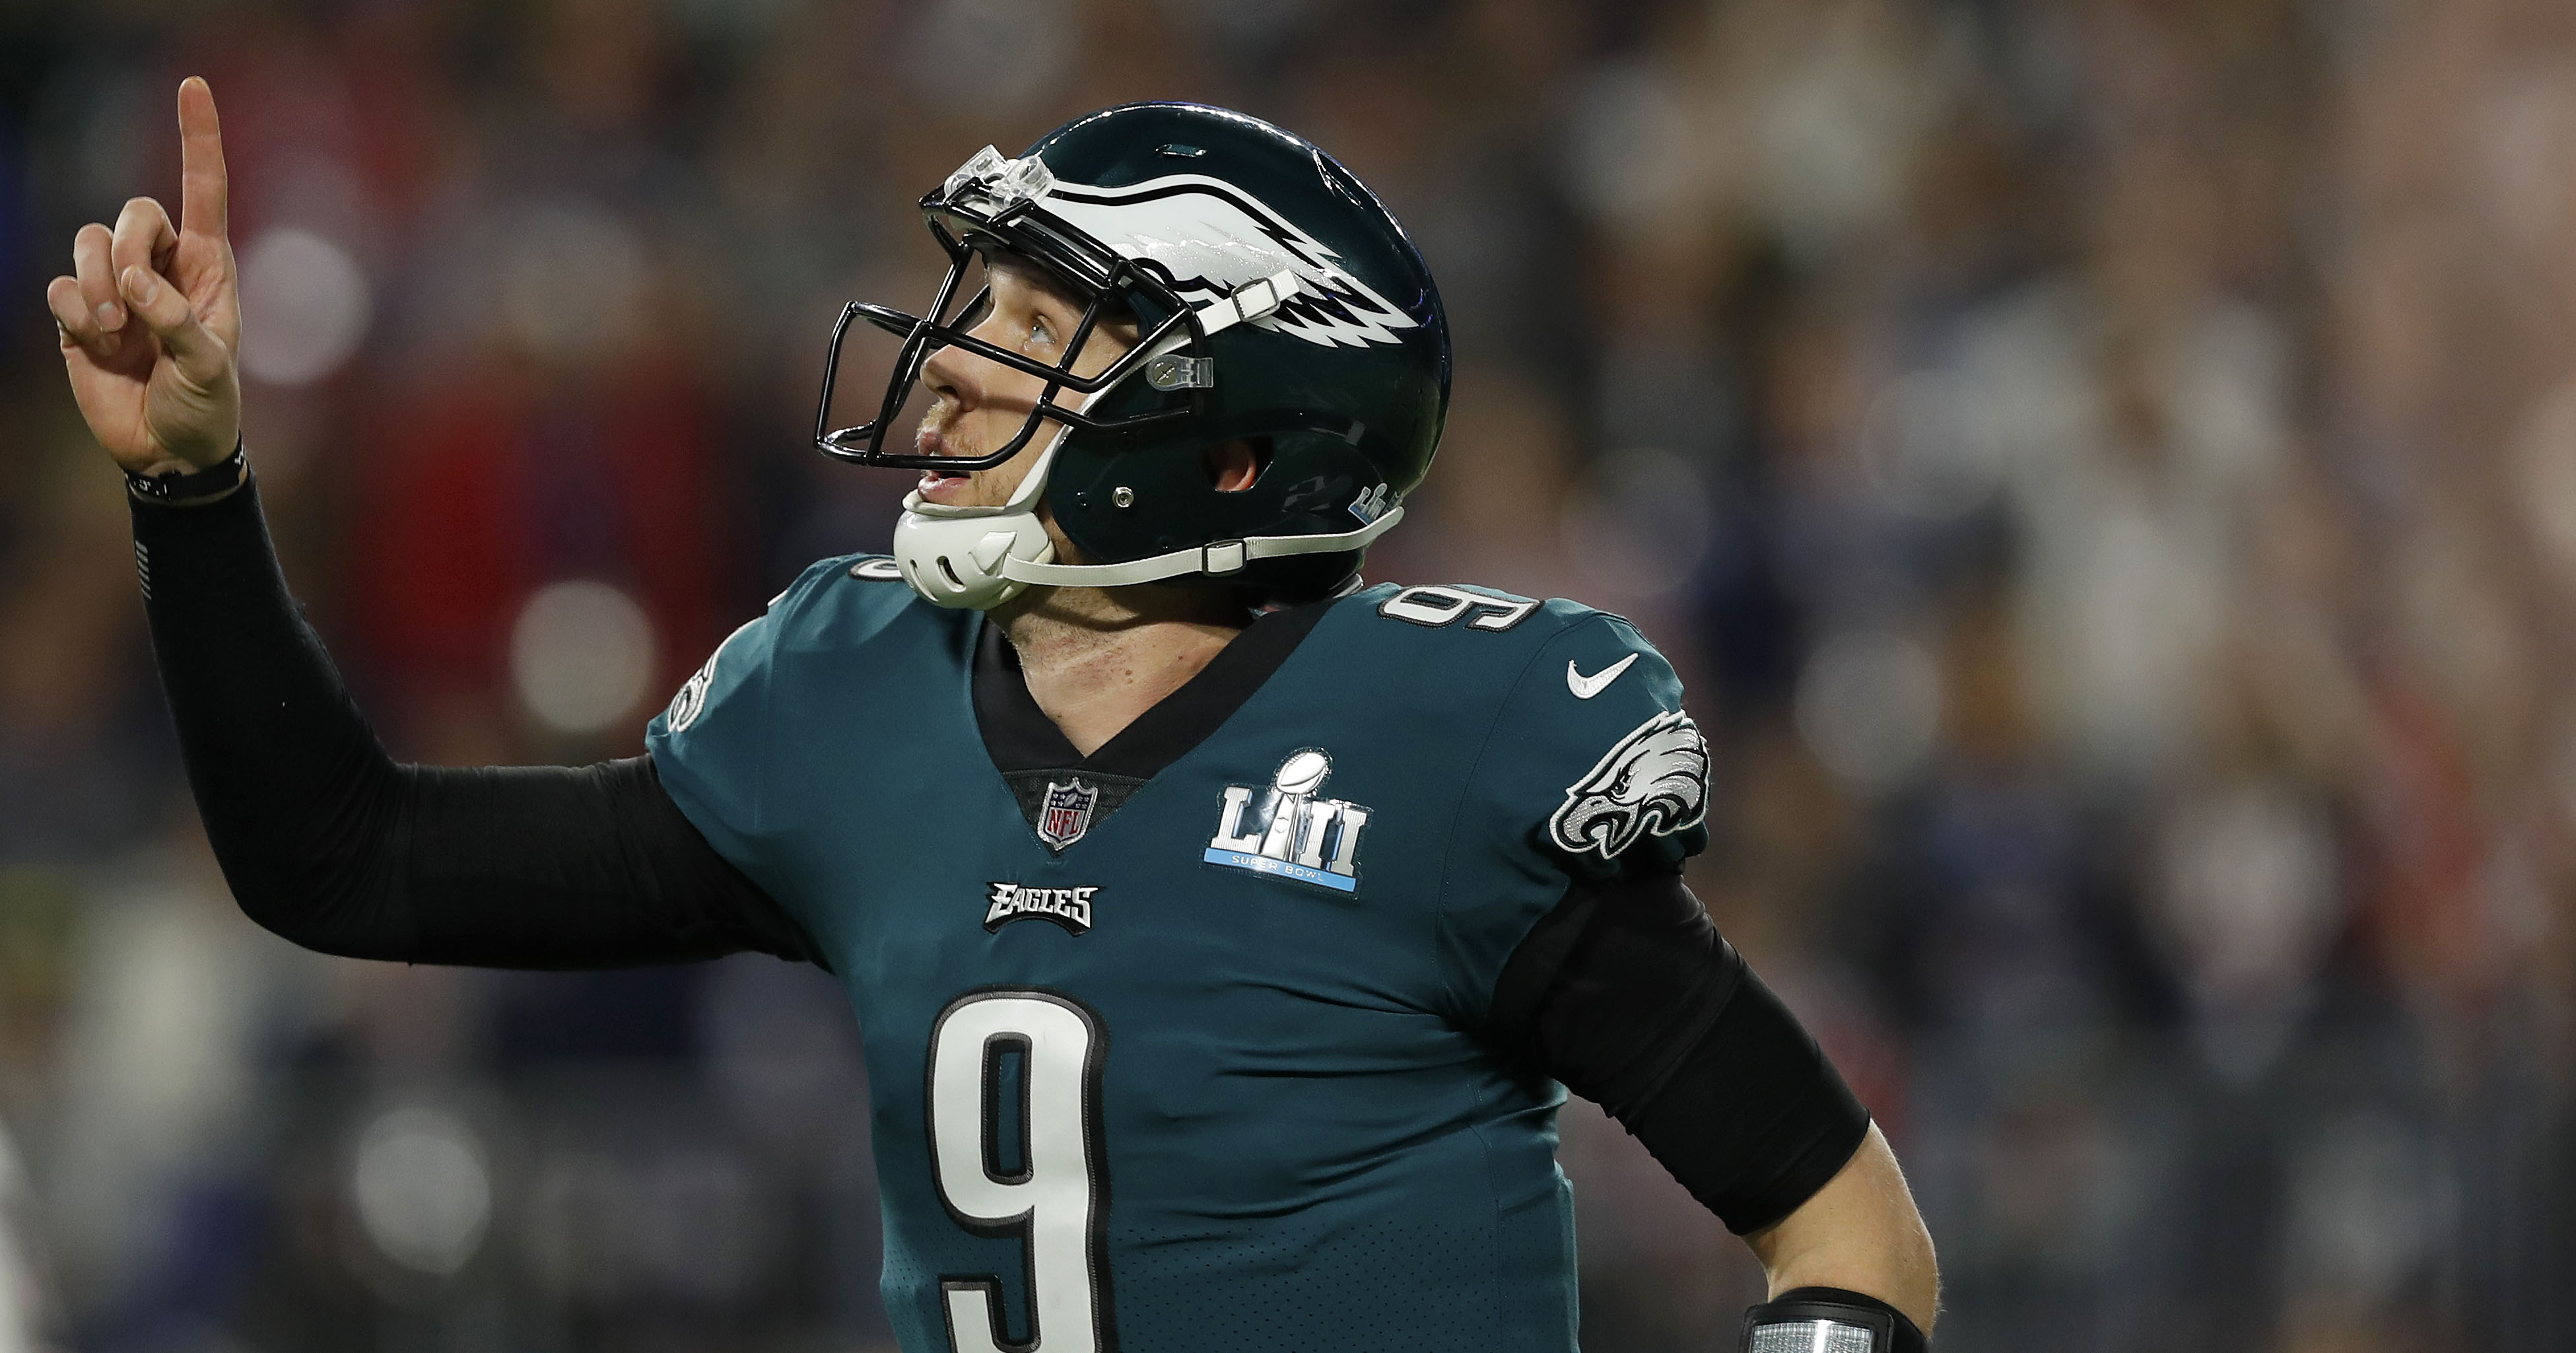 Super Bowl Mvp Nick Foles I Wouldn T Be Here Without